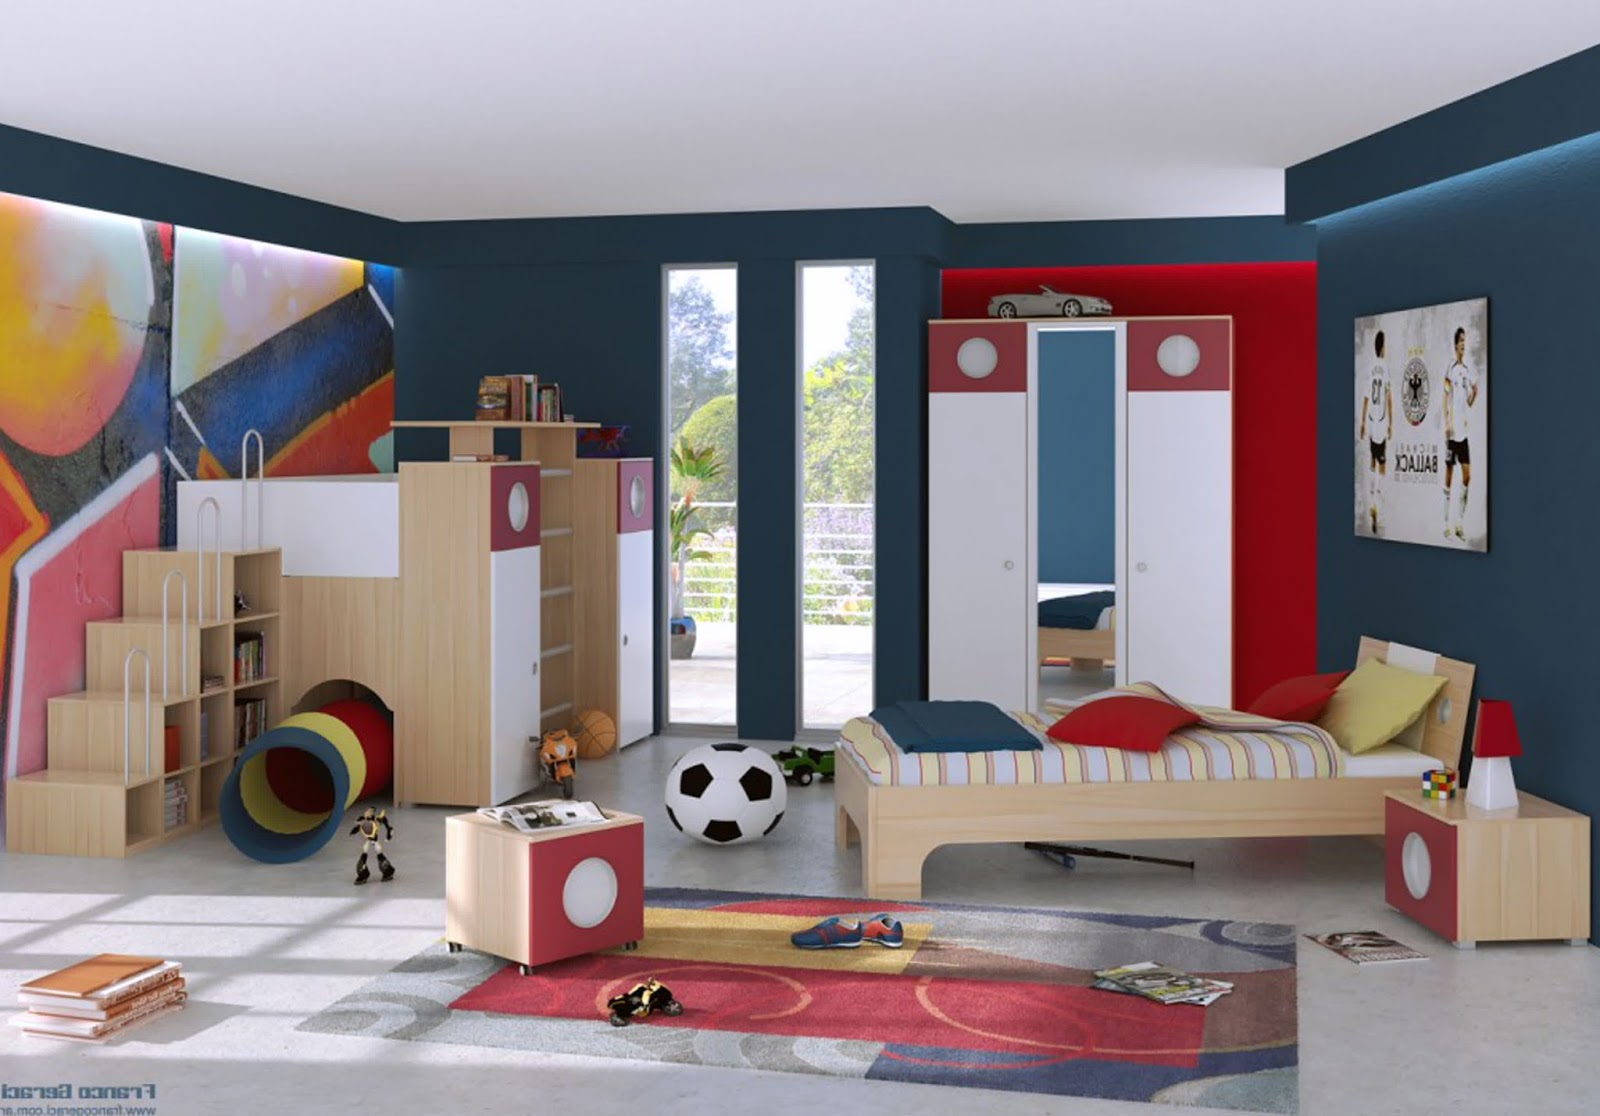 id e d coration de chambres enfants b b et d coration. Black Bedroom Furniture Sets. Home Design Ideas